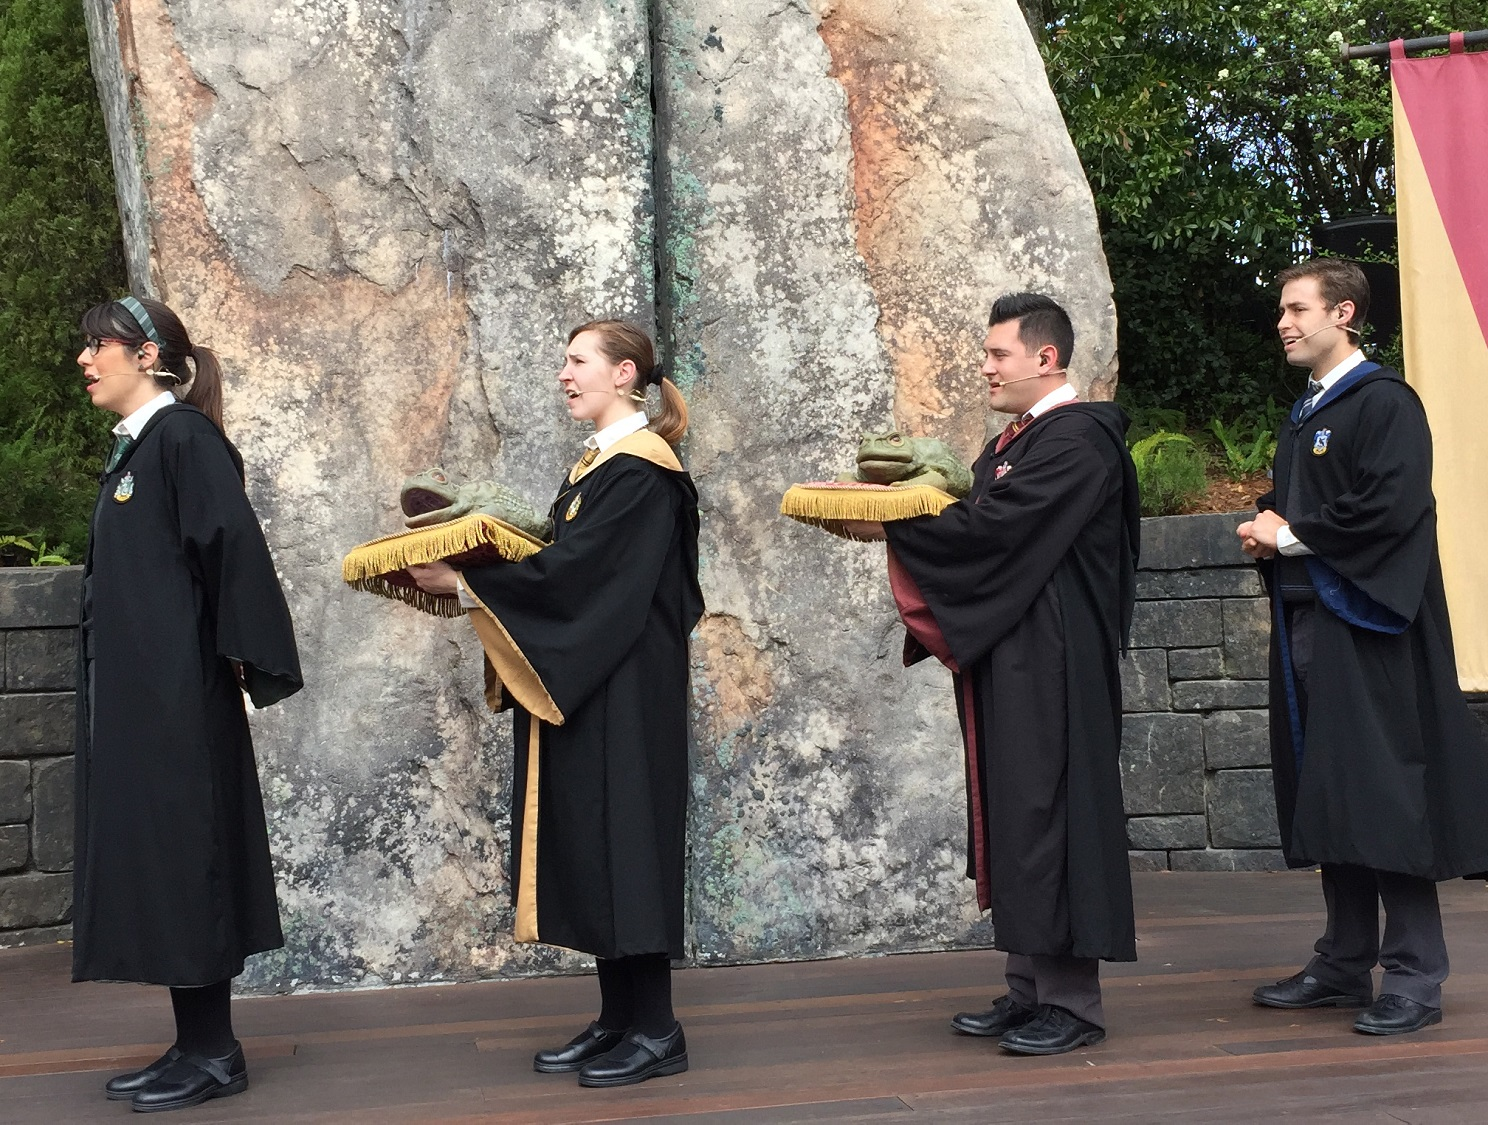 The Frog Choir consists of four Hogwarts students (and two croaking frogs) who perform several Wizarding World themed songs between Hogwarts Castle and Hogsmeade Village.